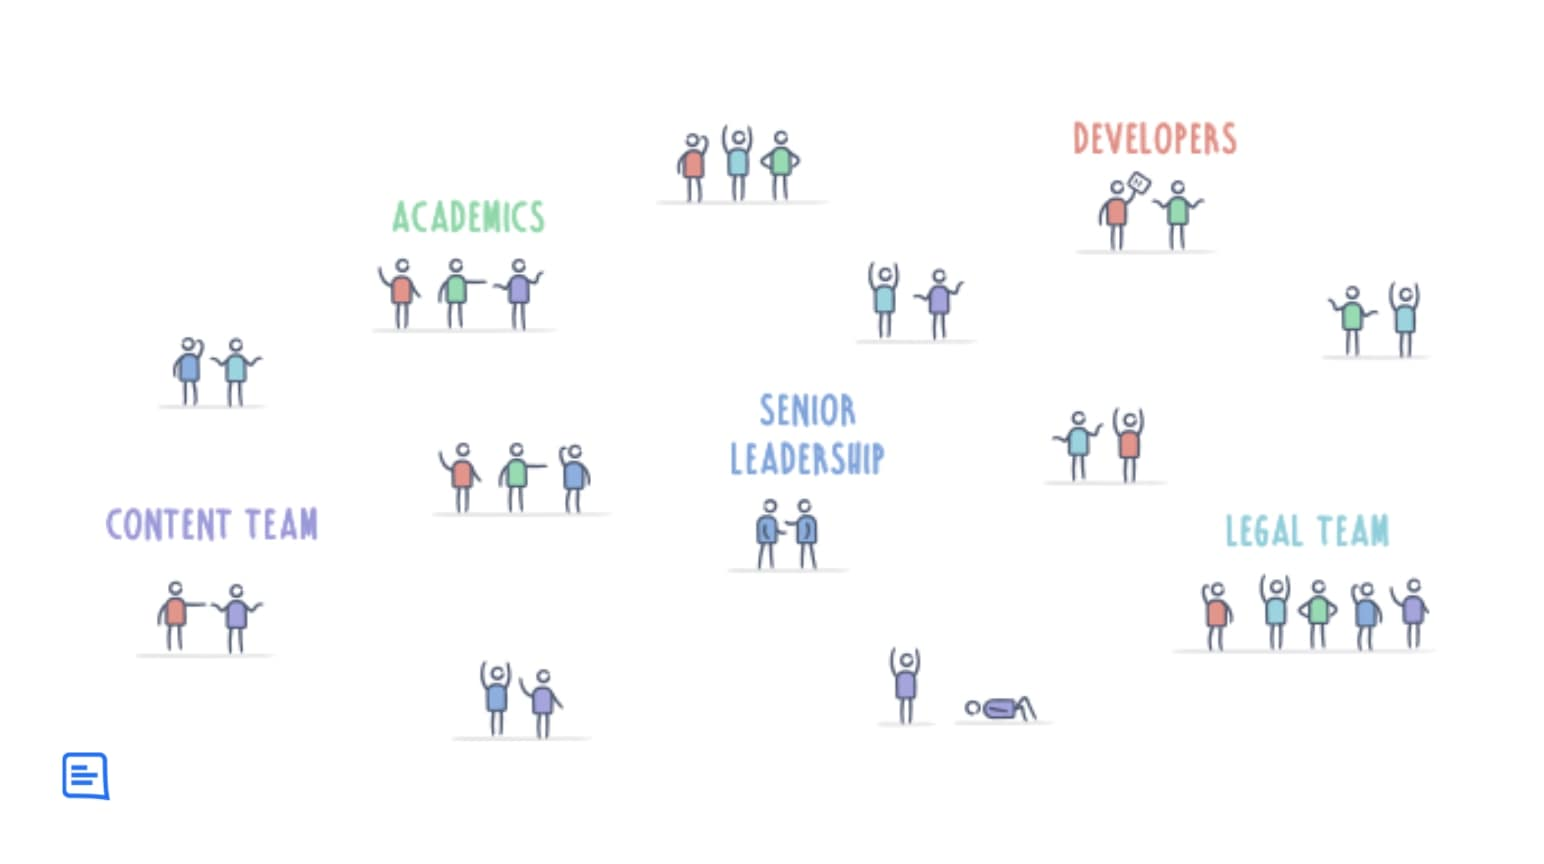 Illustrated people in groups to represent higher ed silos such as academics, content team, senior leadership, developers and the legal team.